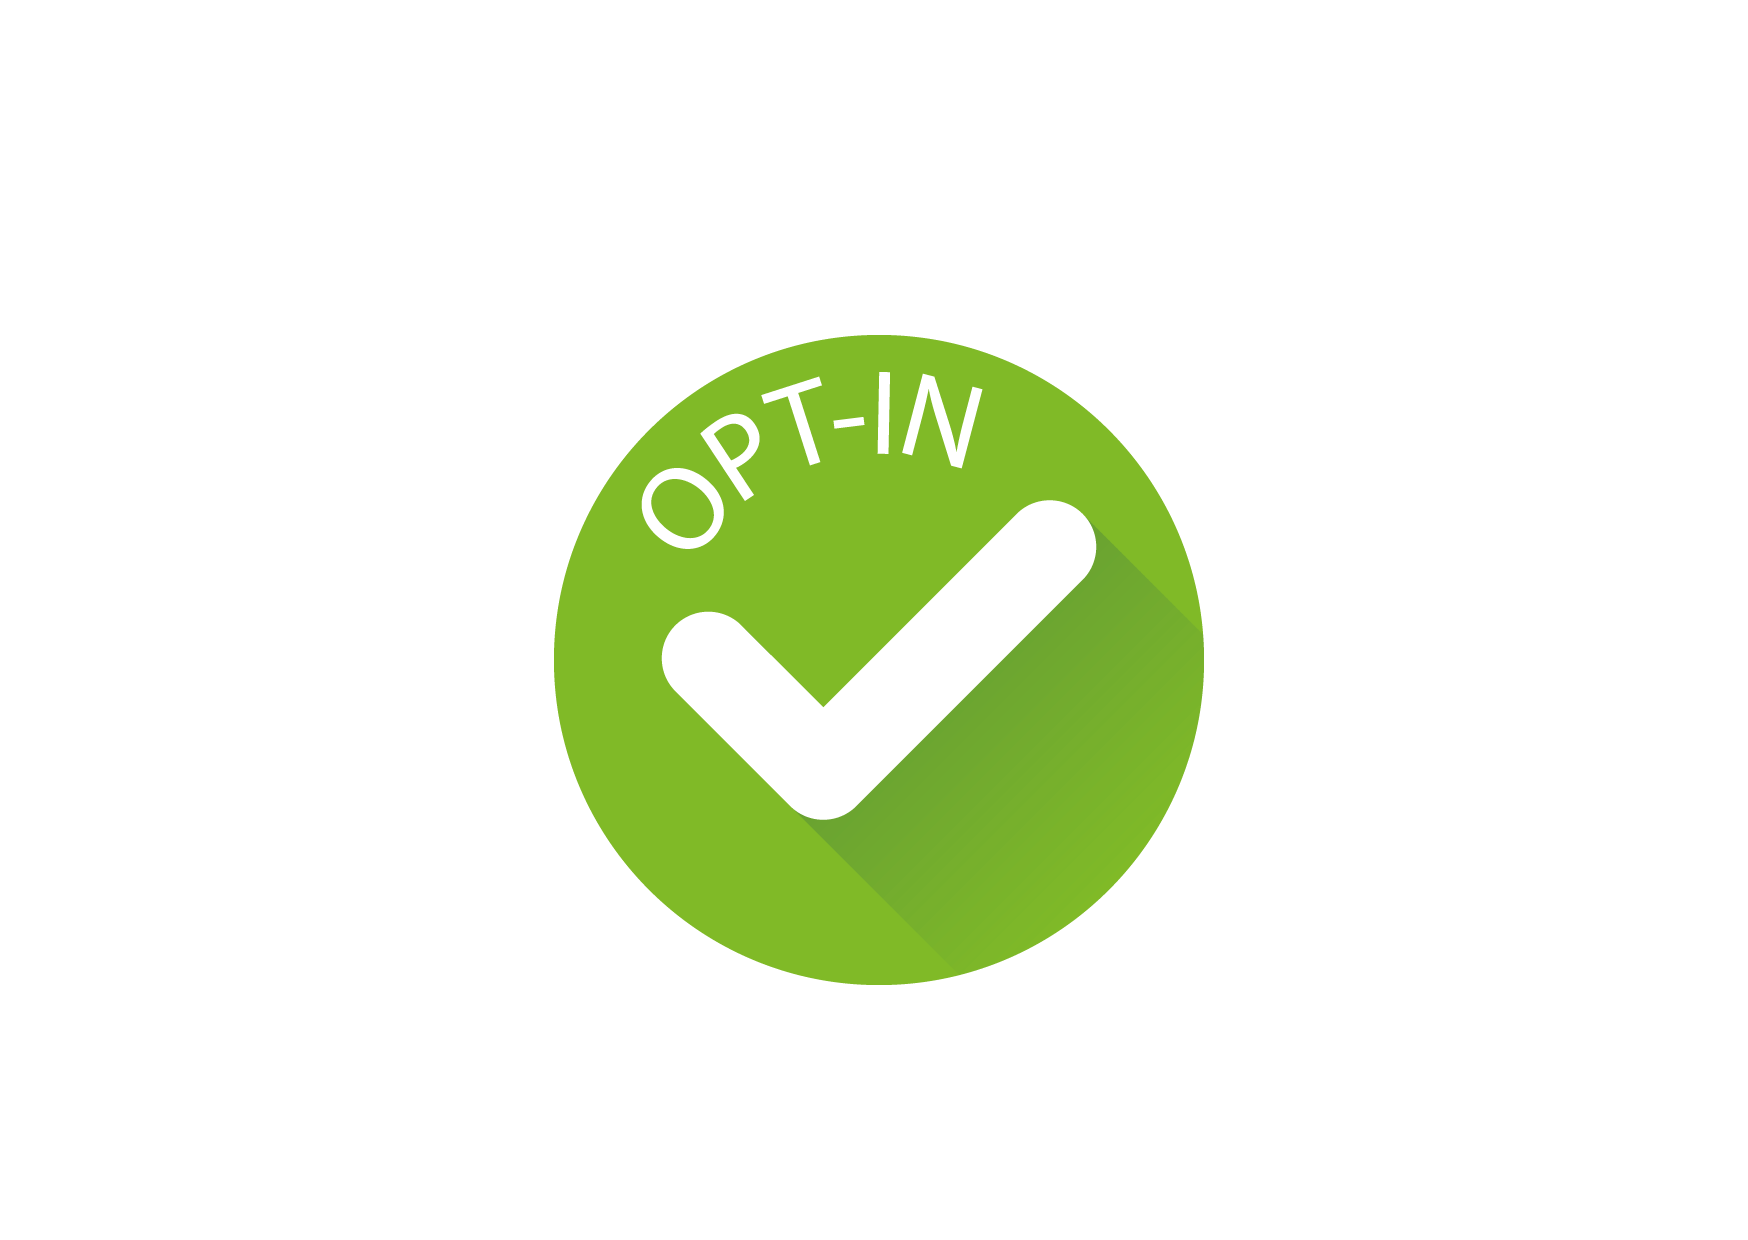 Logo Opt-in-01